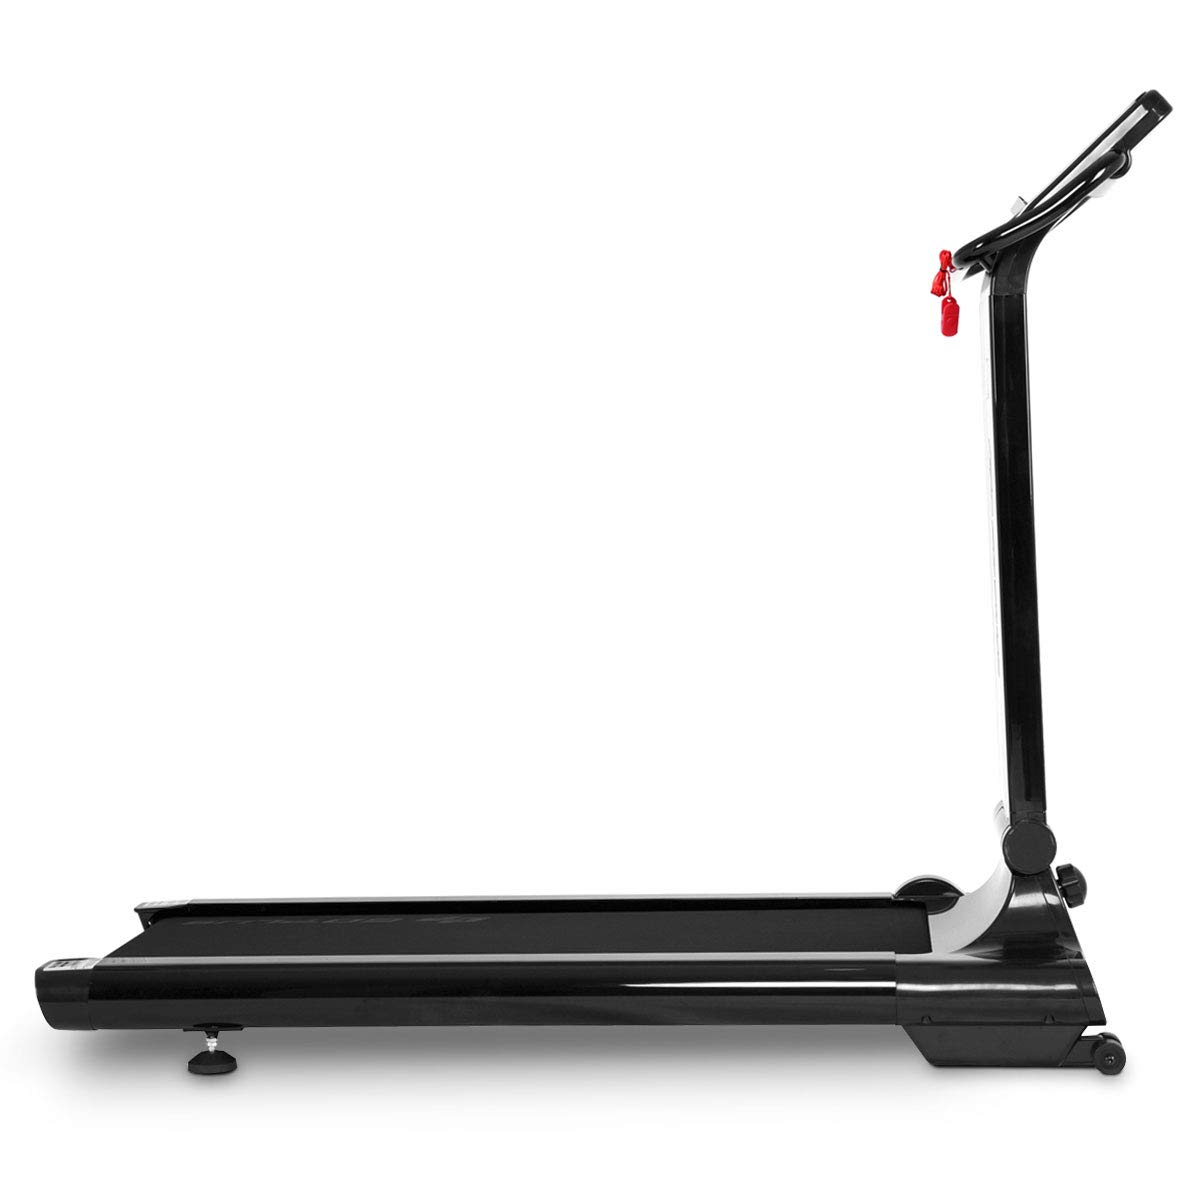 Goplus 1.5HP Electric Folding Treadmill Portable Motorized Running Machine Home Gym Cardio Fitness w/App (Black) by Goplus (Image #6)